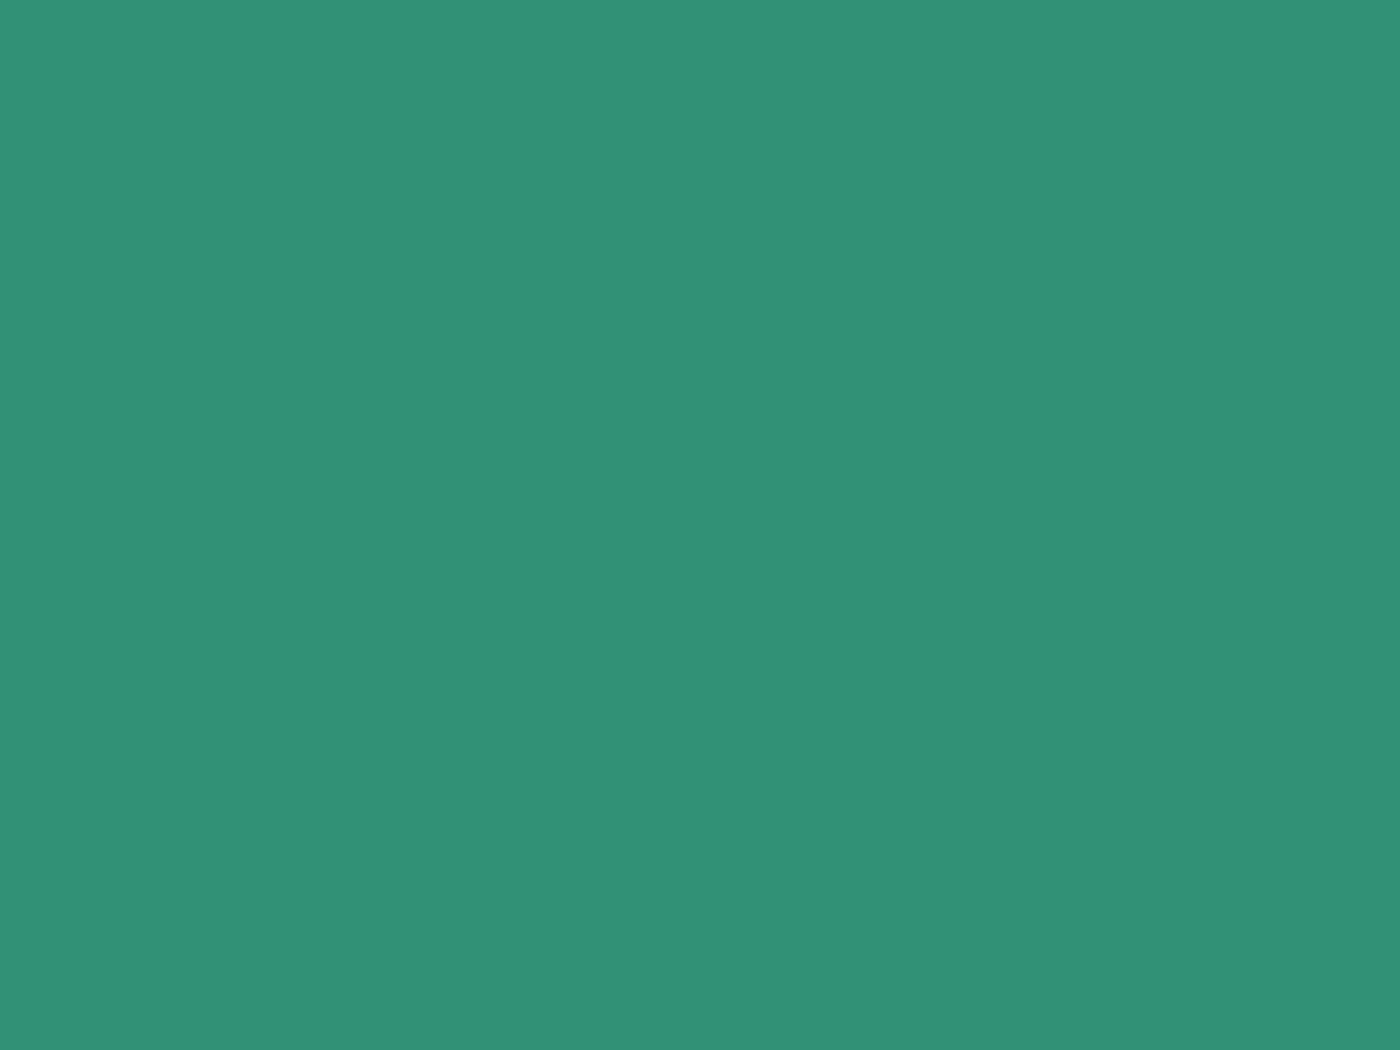 1400x1050 Illuminating Emerald Solid Color Background